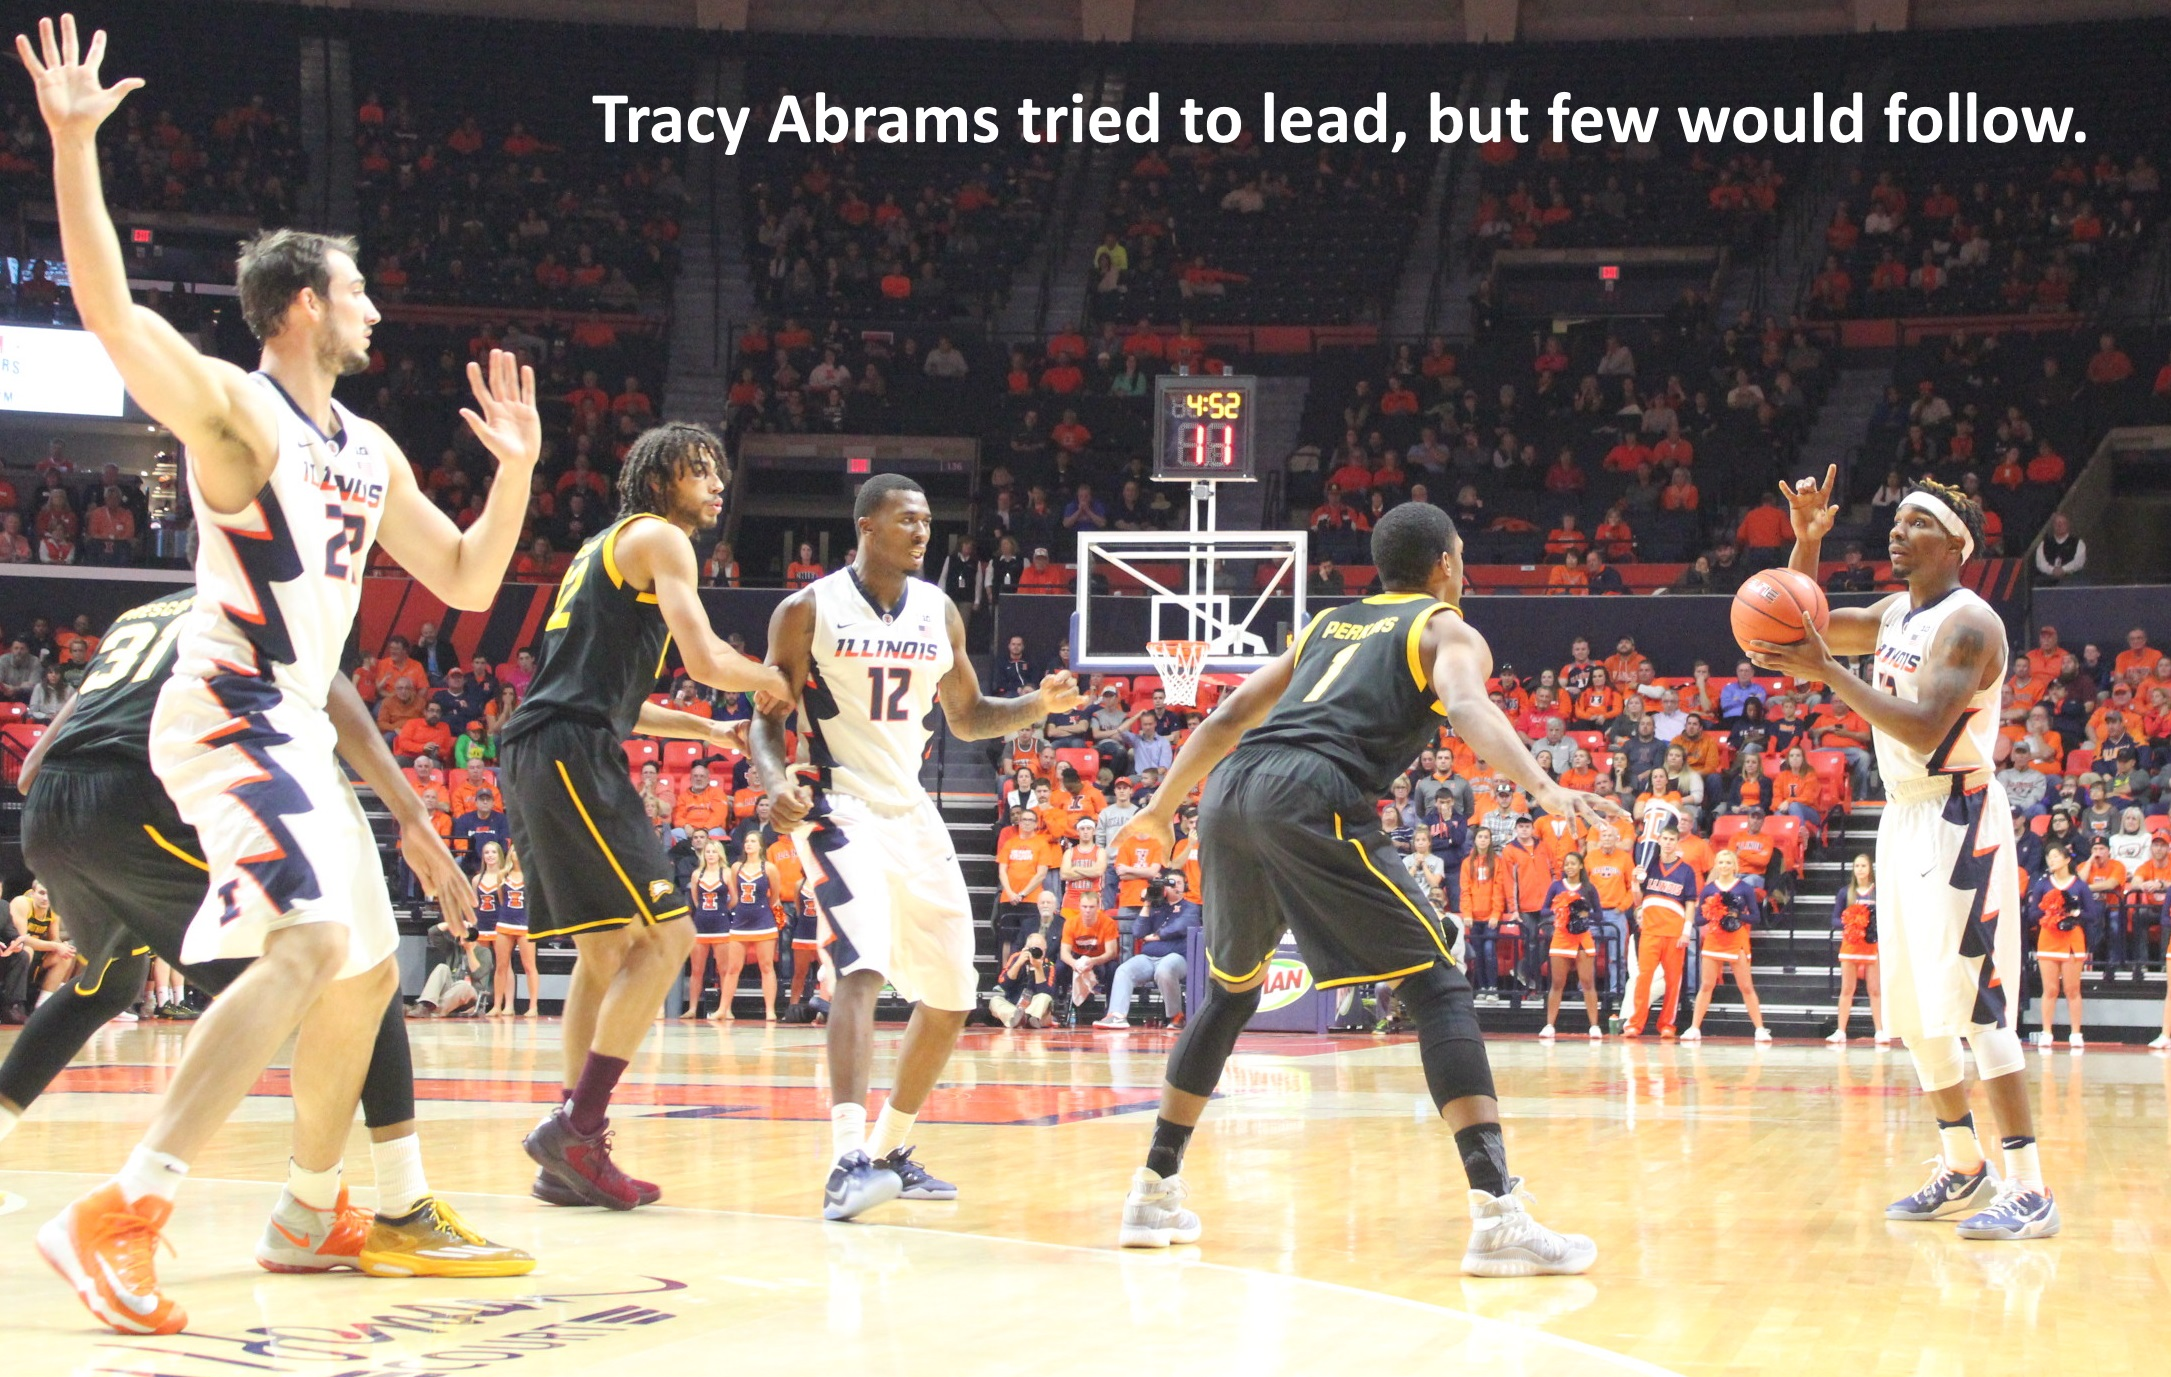 tracy-abrams-tried-to-lead-but-few-would-follow-winthrop